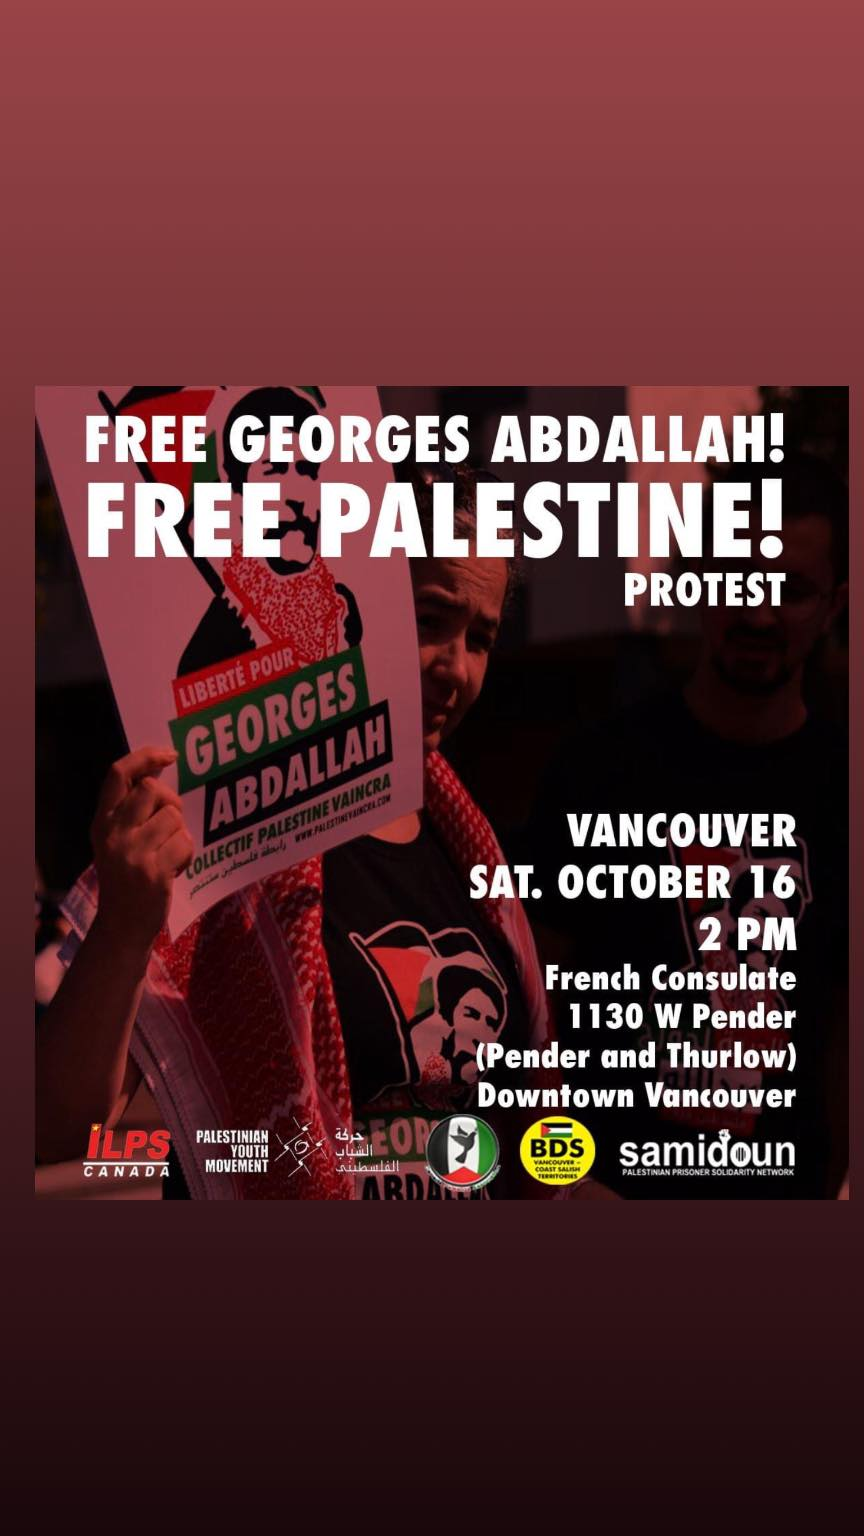 Free Georges Abdallah! Free Palestine Protest in Vancouver!